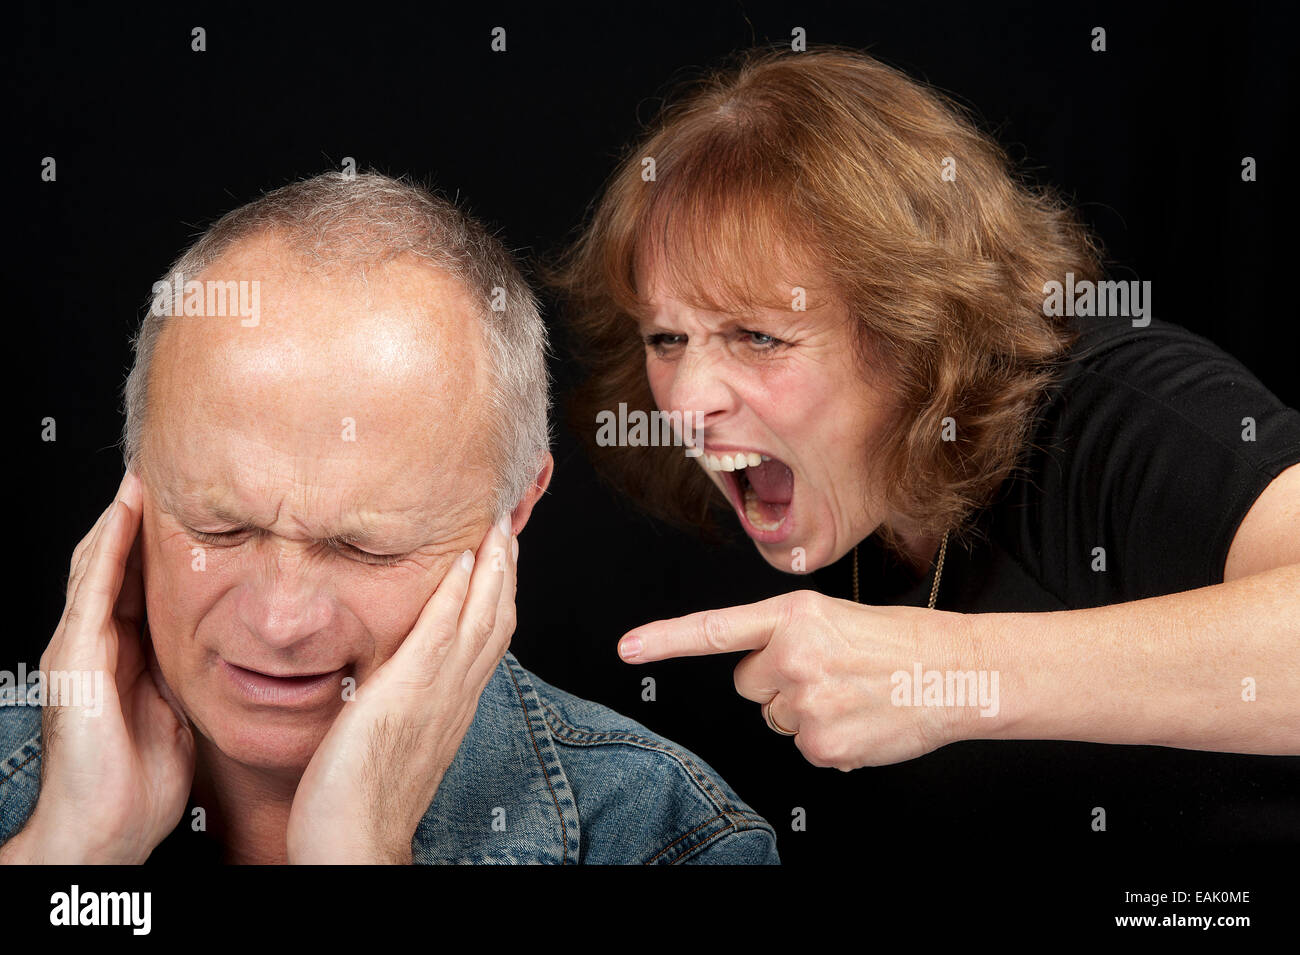 Middle aged couple having an argument, with the woman shouting and pointing finger at the crying man. - Stock Image